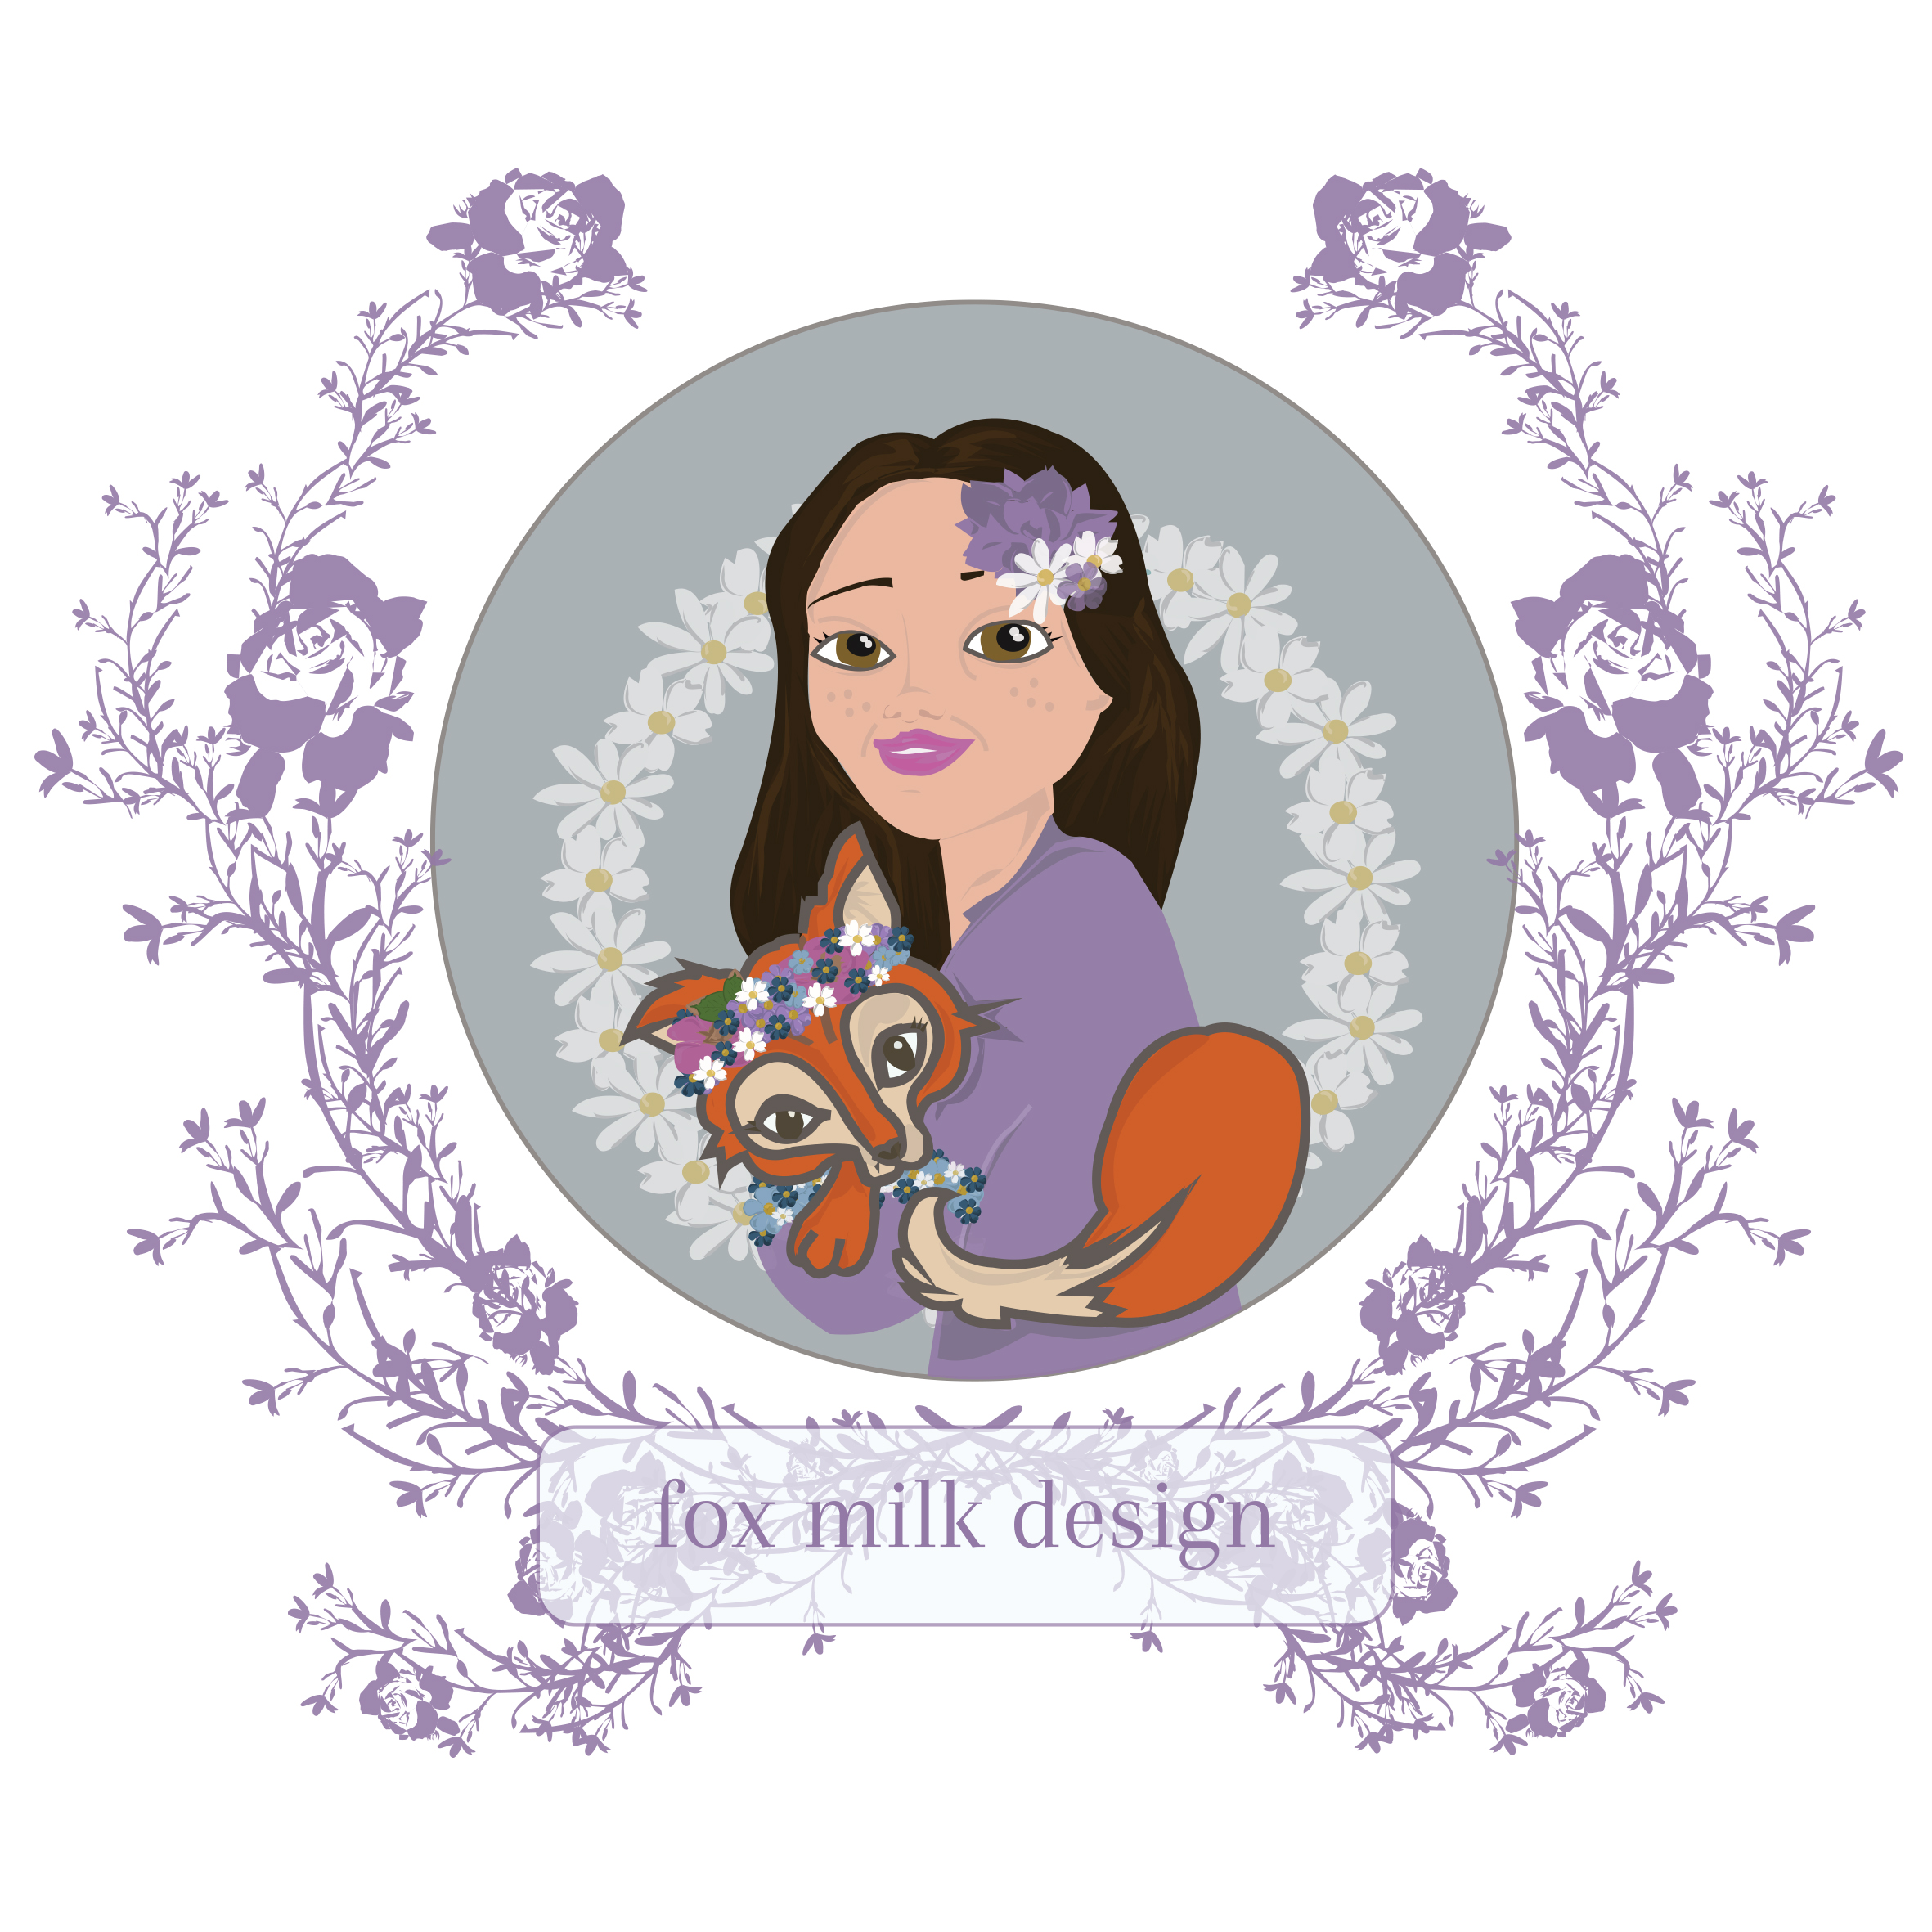 fox milk lavender design.jpg